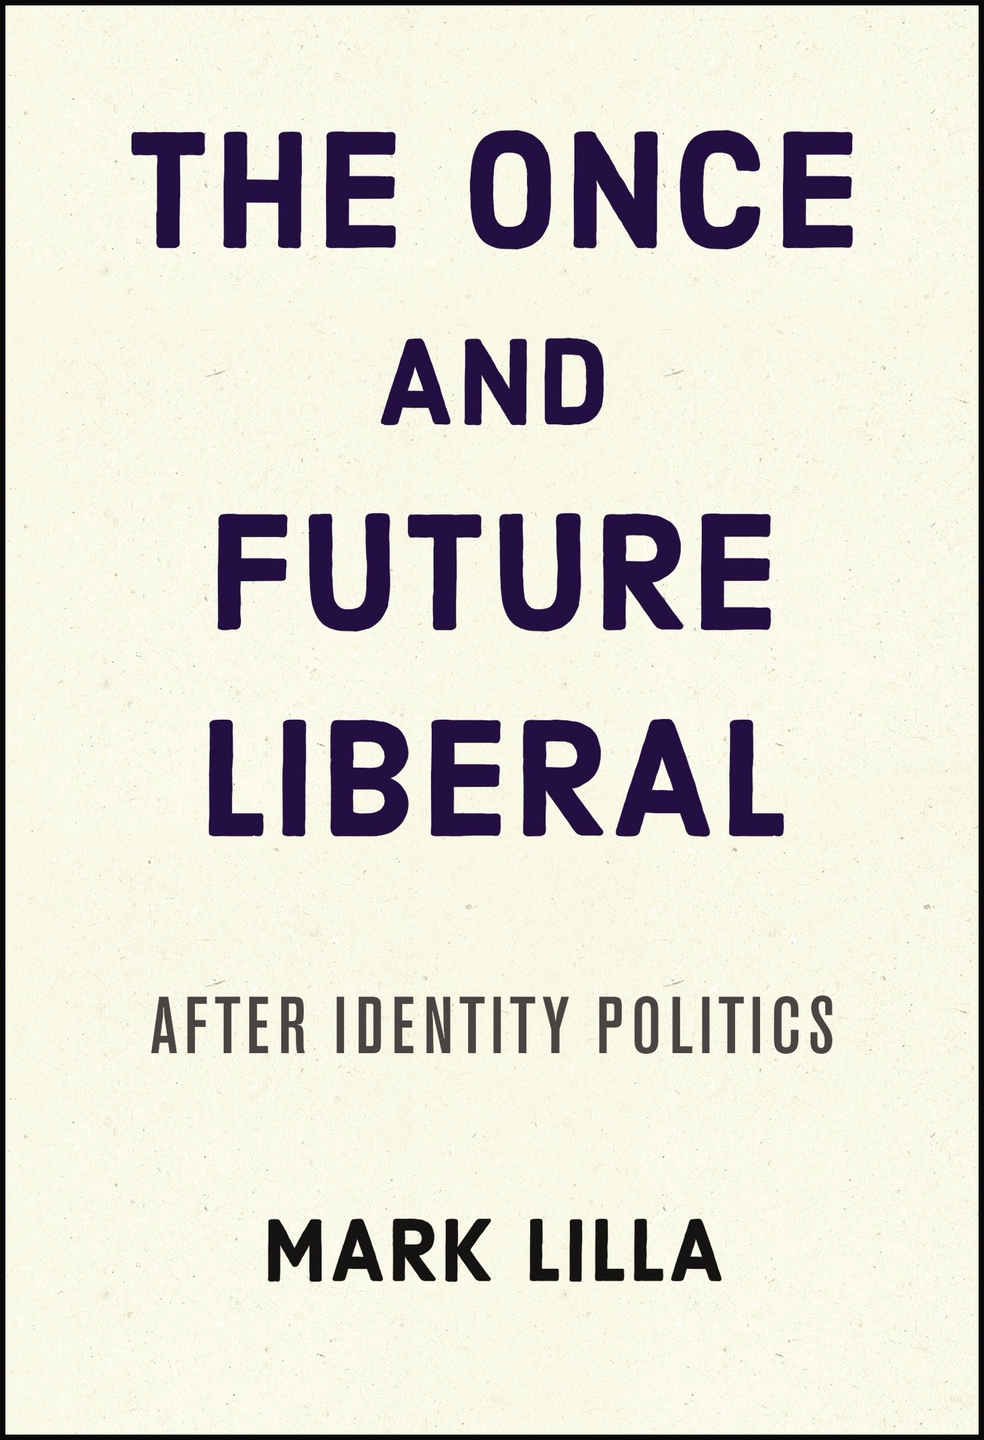 Download [PDF] The Once and Future Liberal eBook (@download_pdf_the_once_and_future_liberal) Cover Image